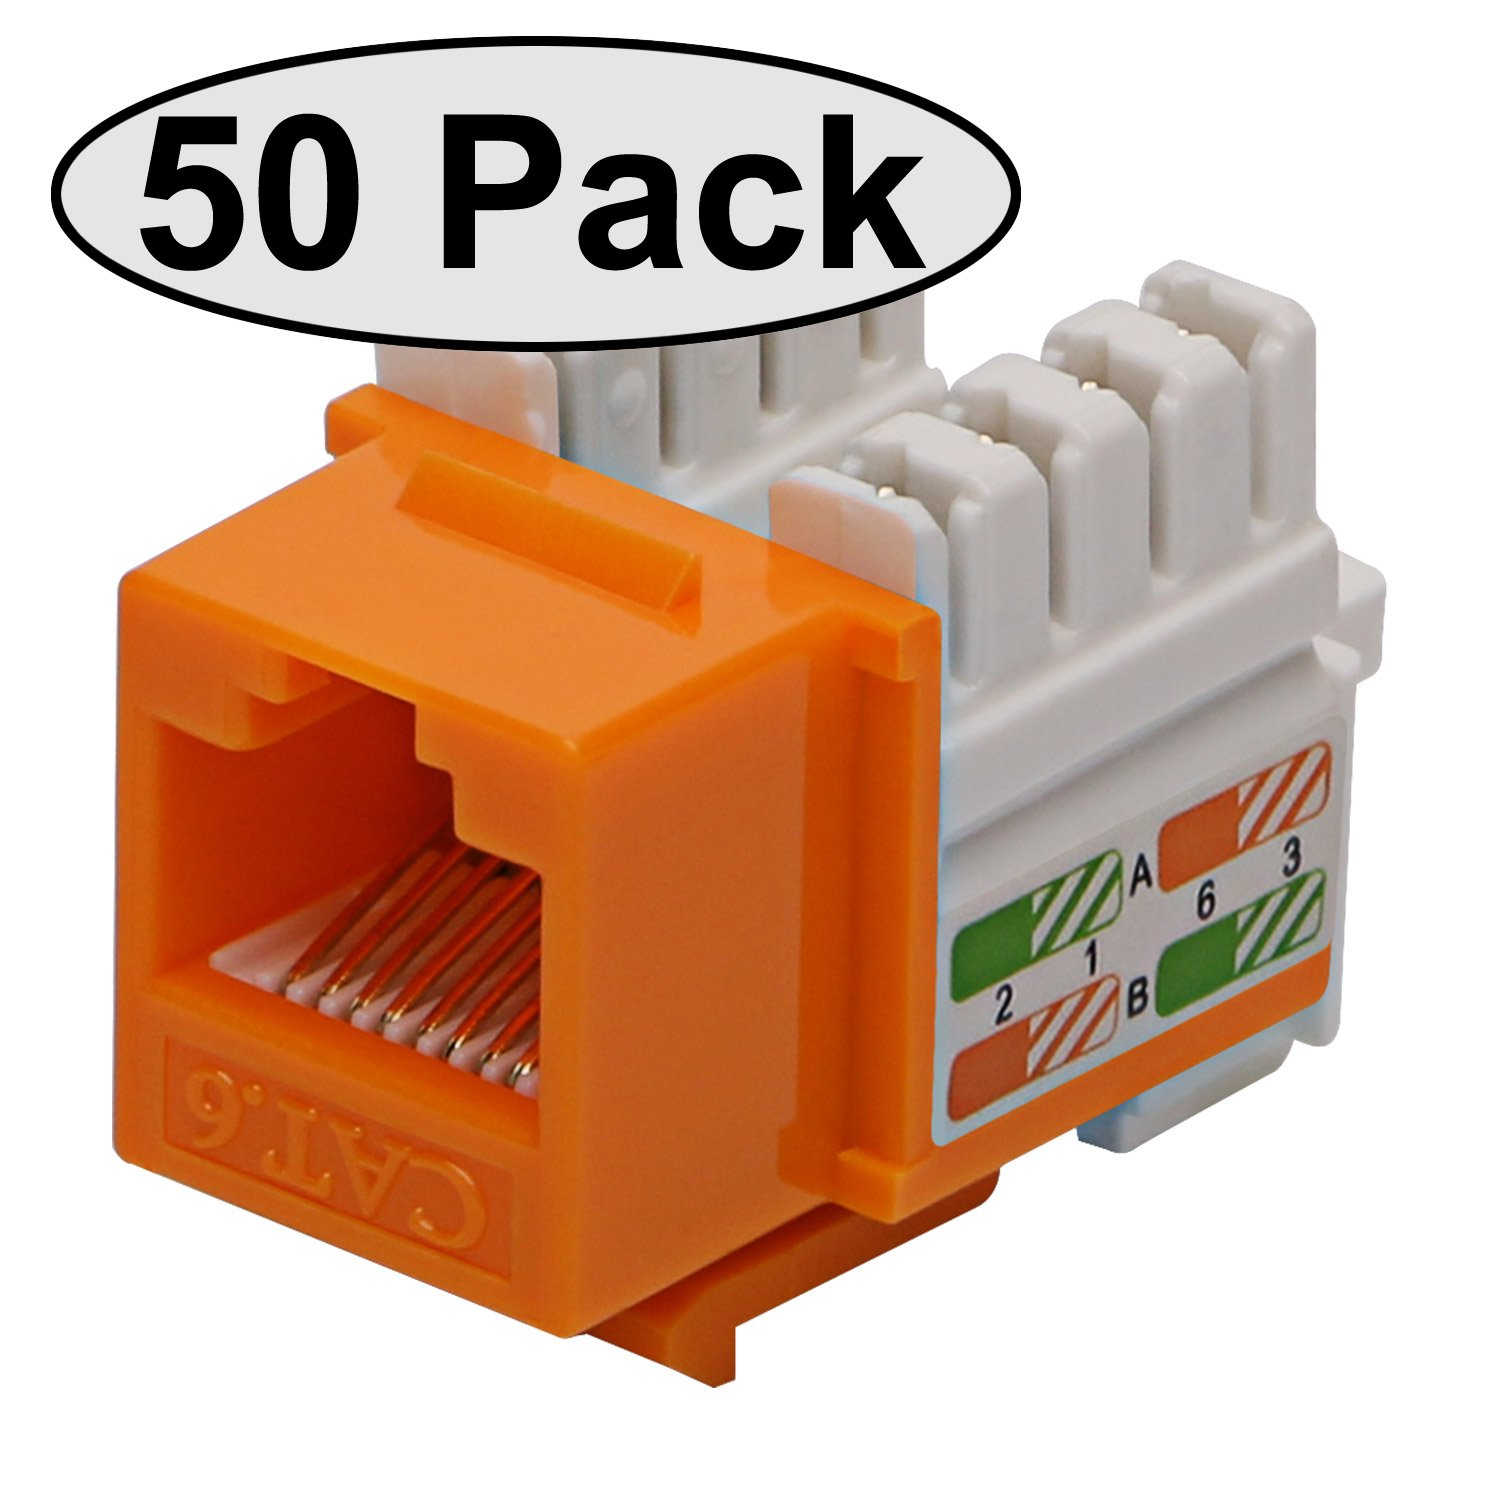 Cat6 Rj45 Modular Keystone Jack 110 Style Orange Box Wiring Diagram Of 50 Computers Accessories